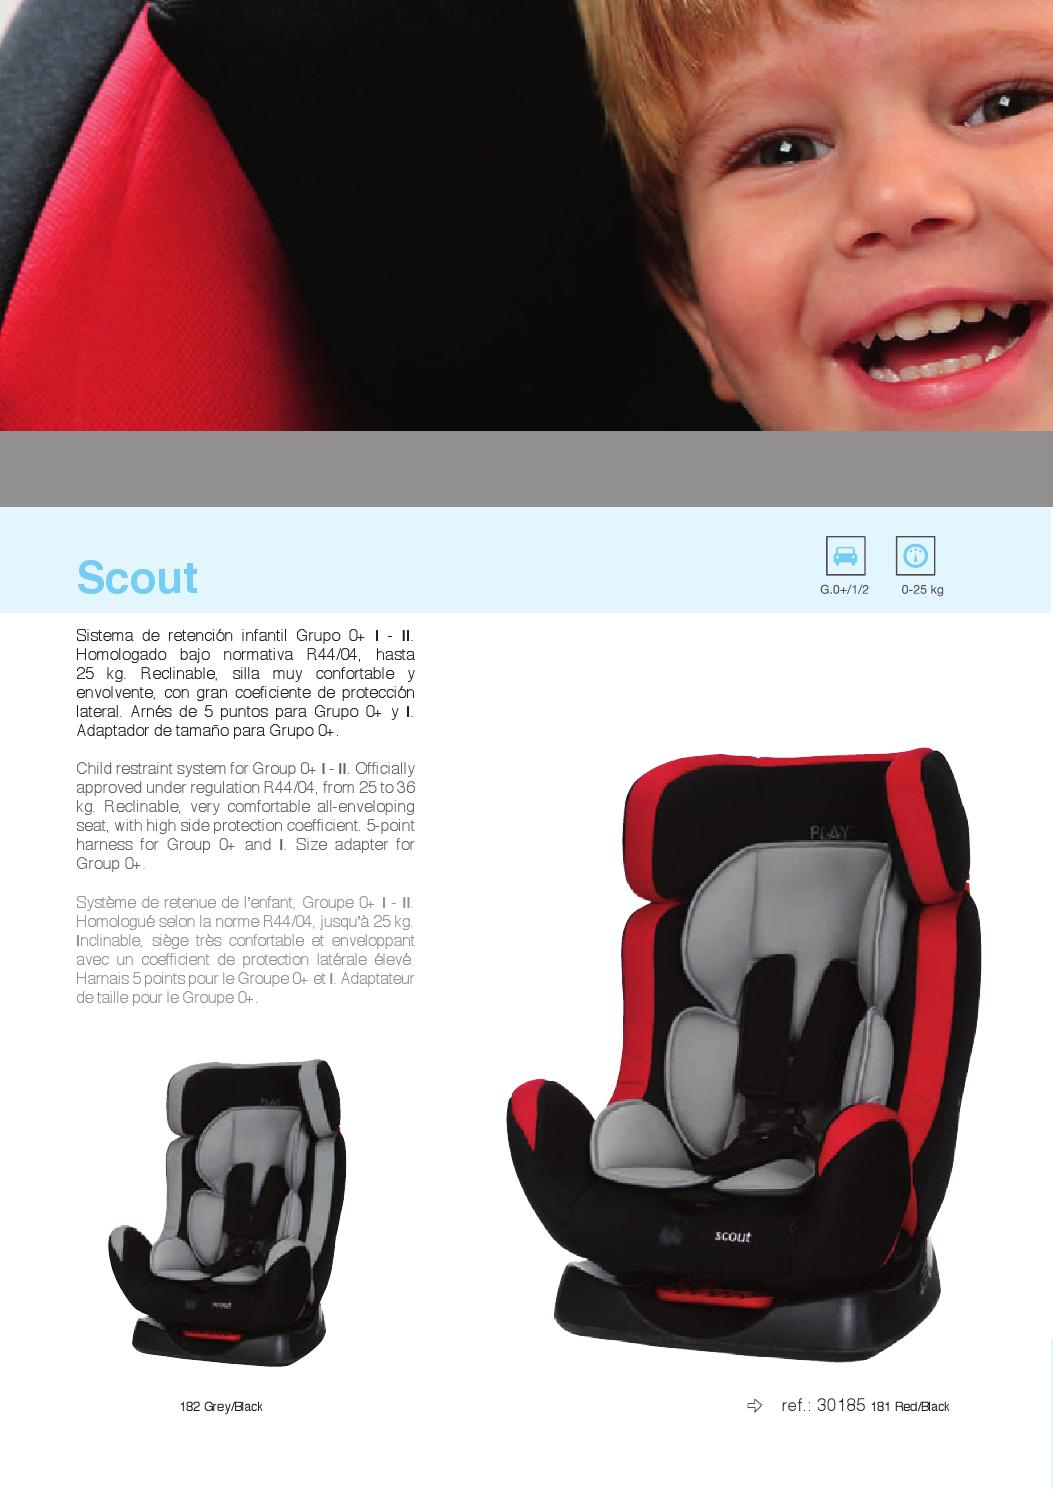 Scout by productos play s a issuu - Silla play scout ...